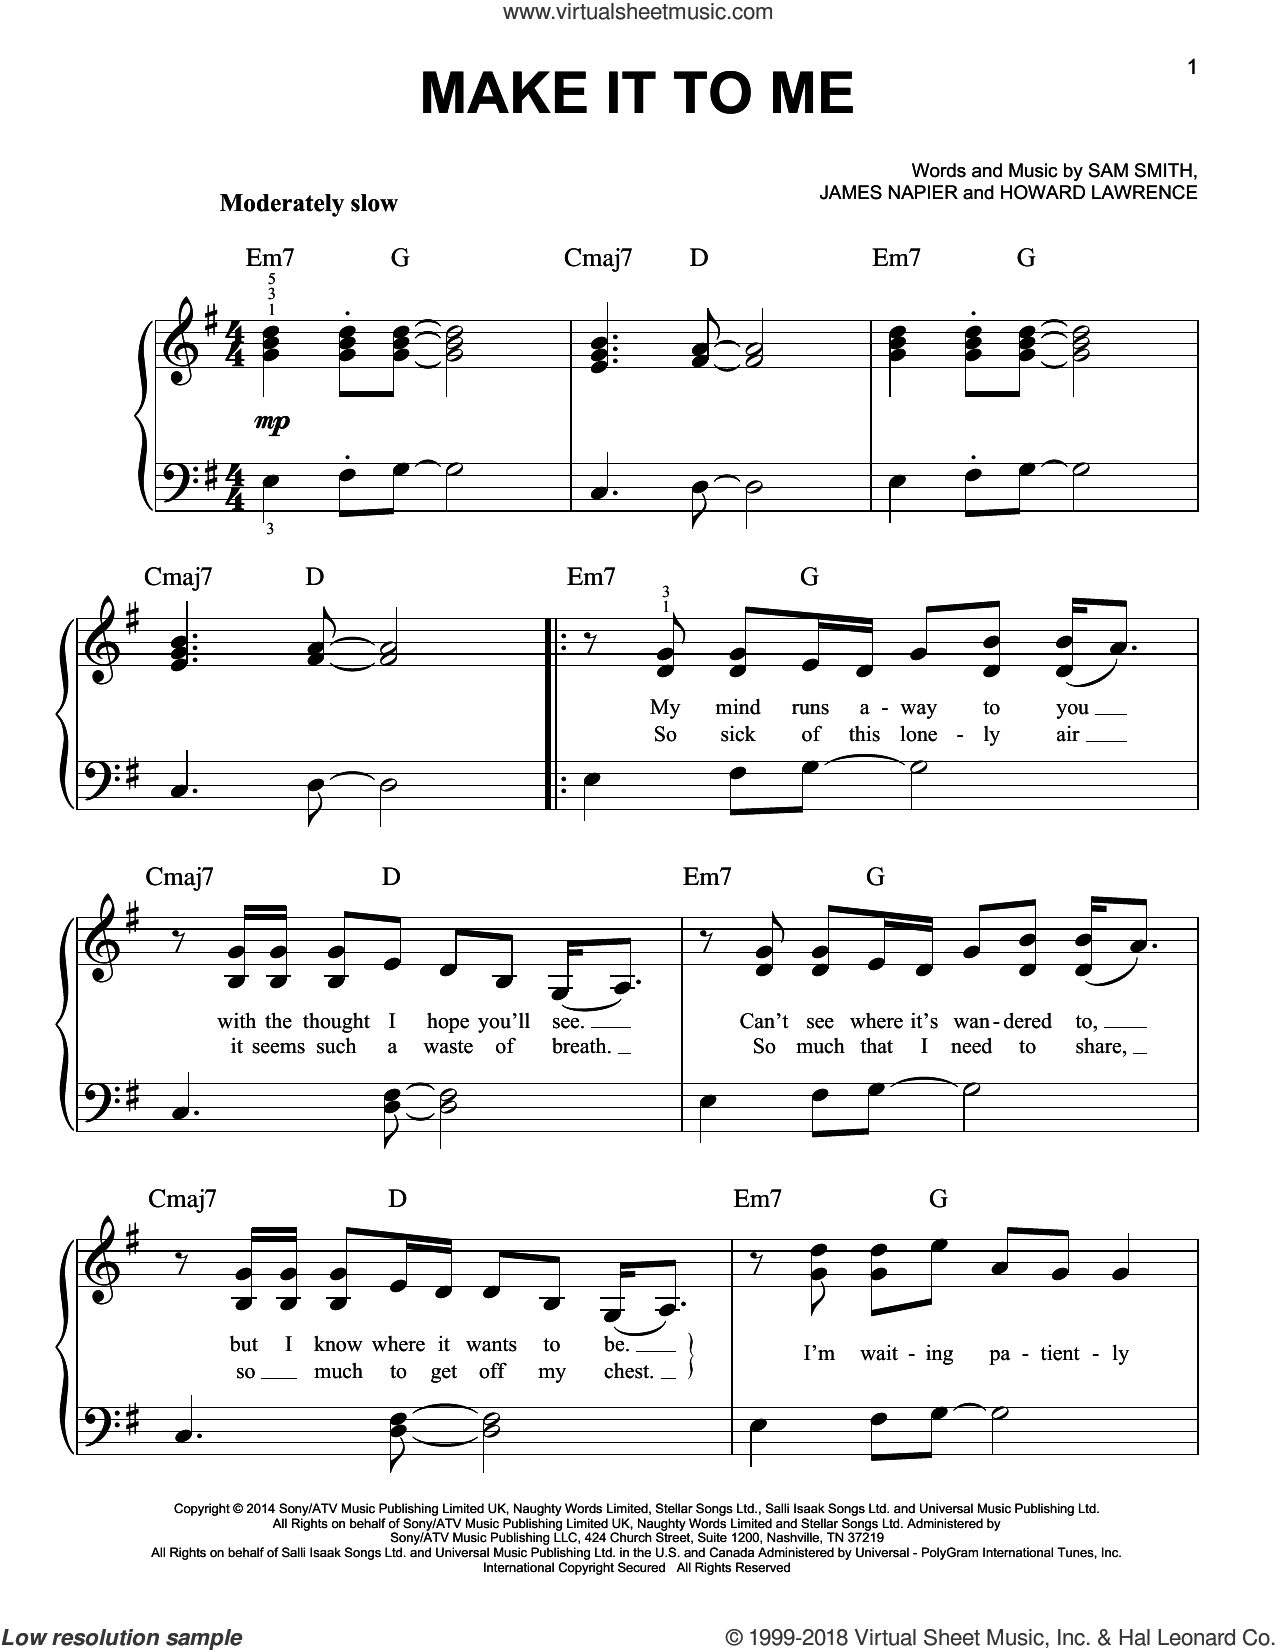 Make It To Me sheet music for piano solo by Sam Smith, Howard Lawrence and James Napier, easy skill level